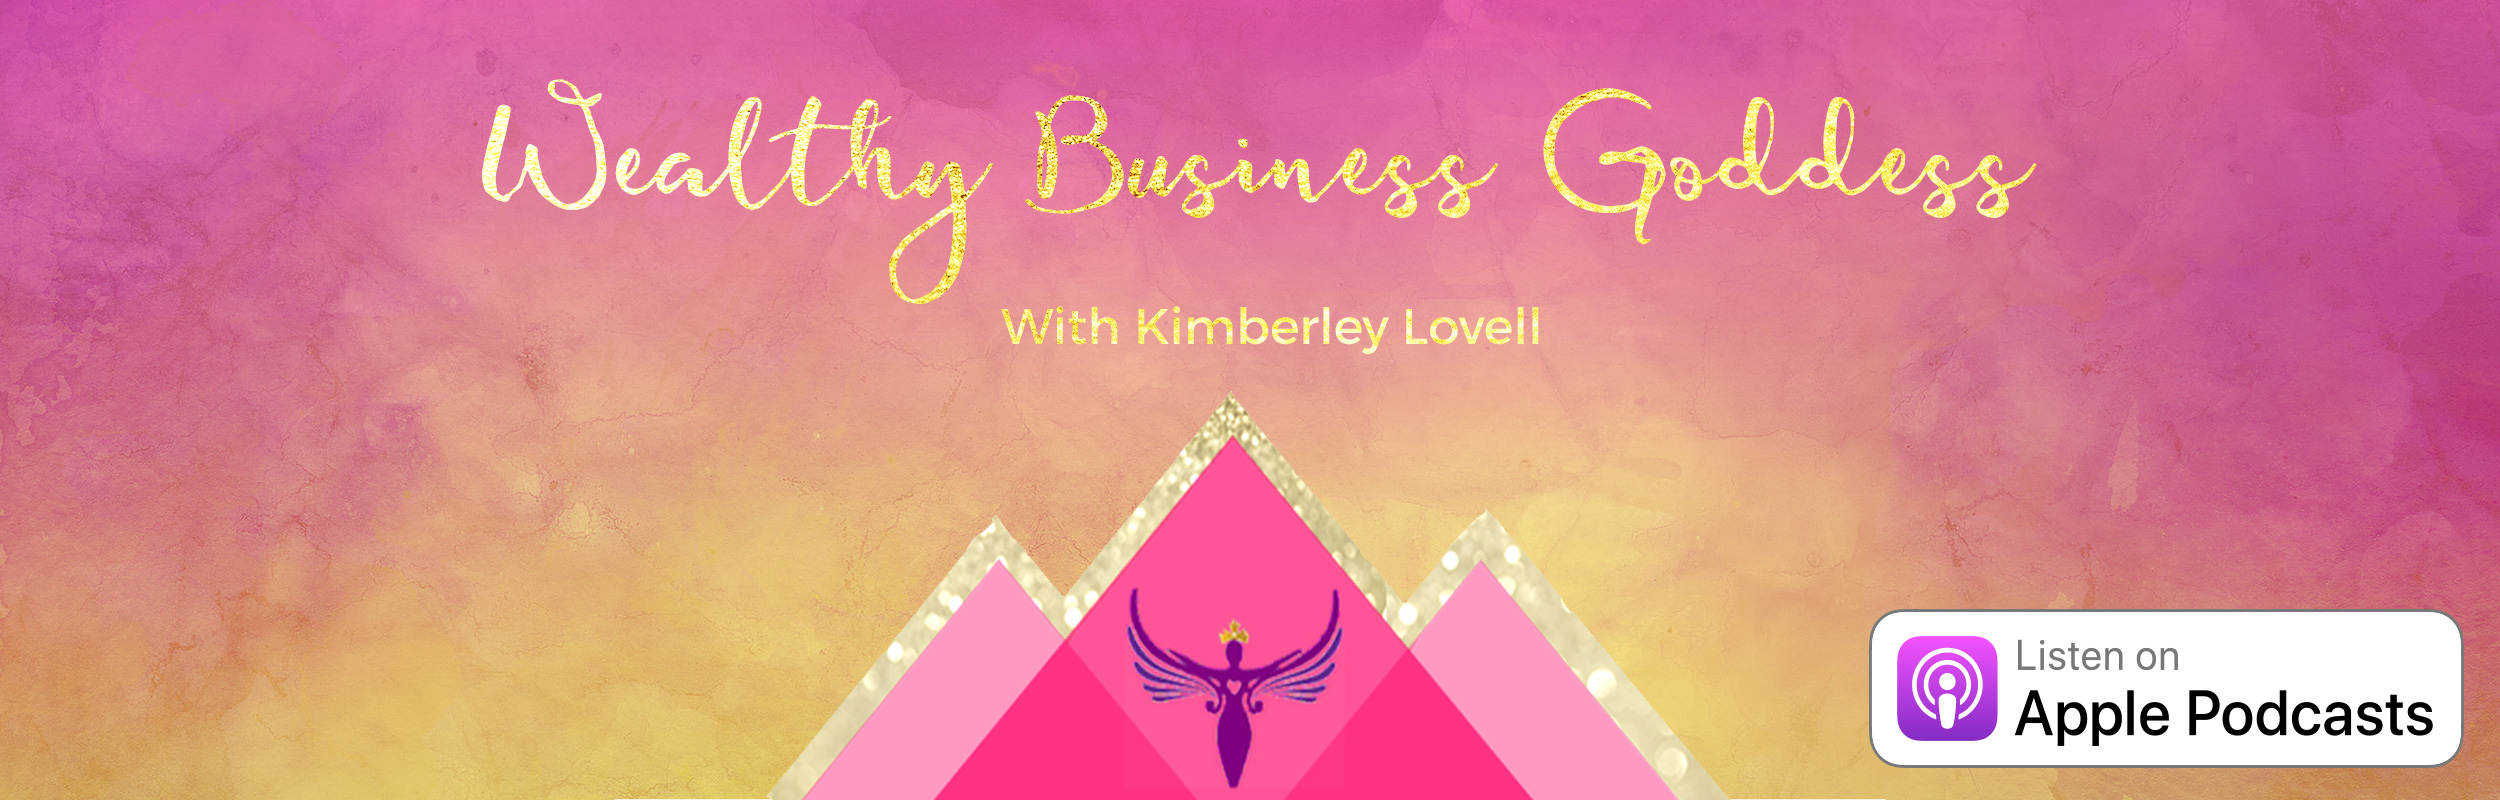 Listen to the Wealthy Business Goddess Podcast